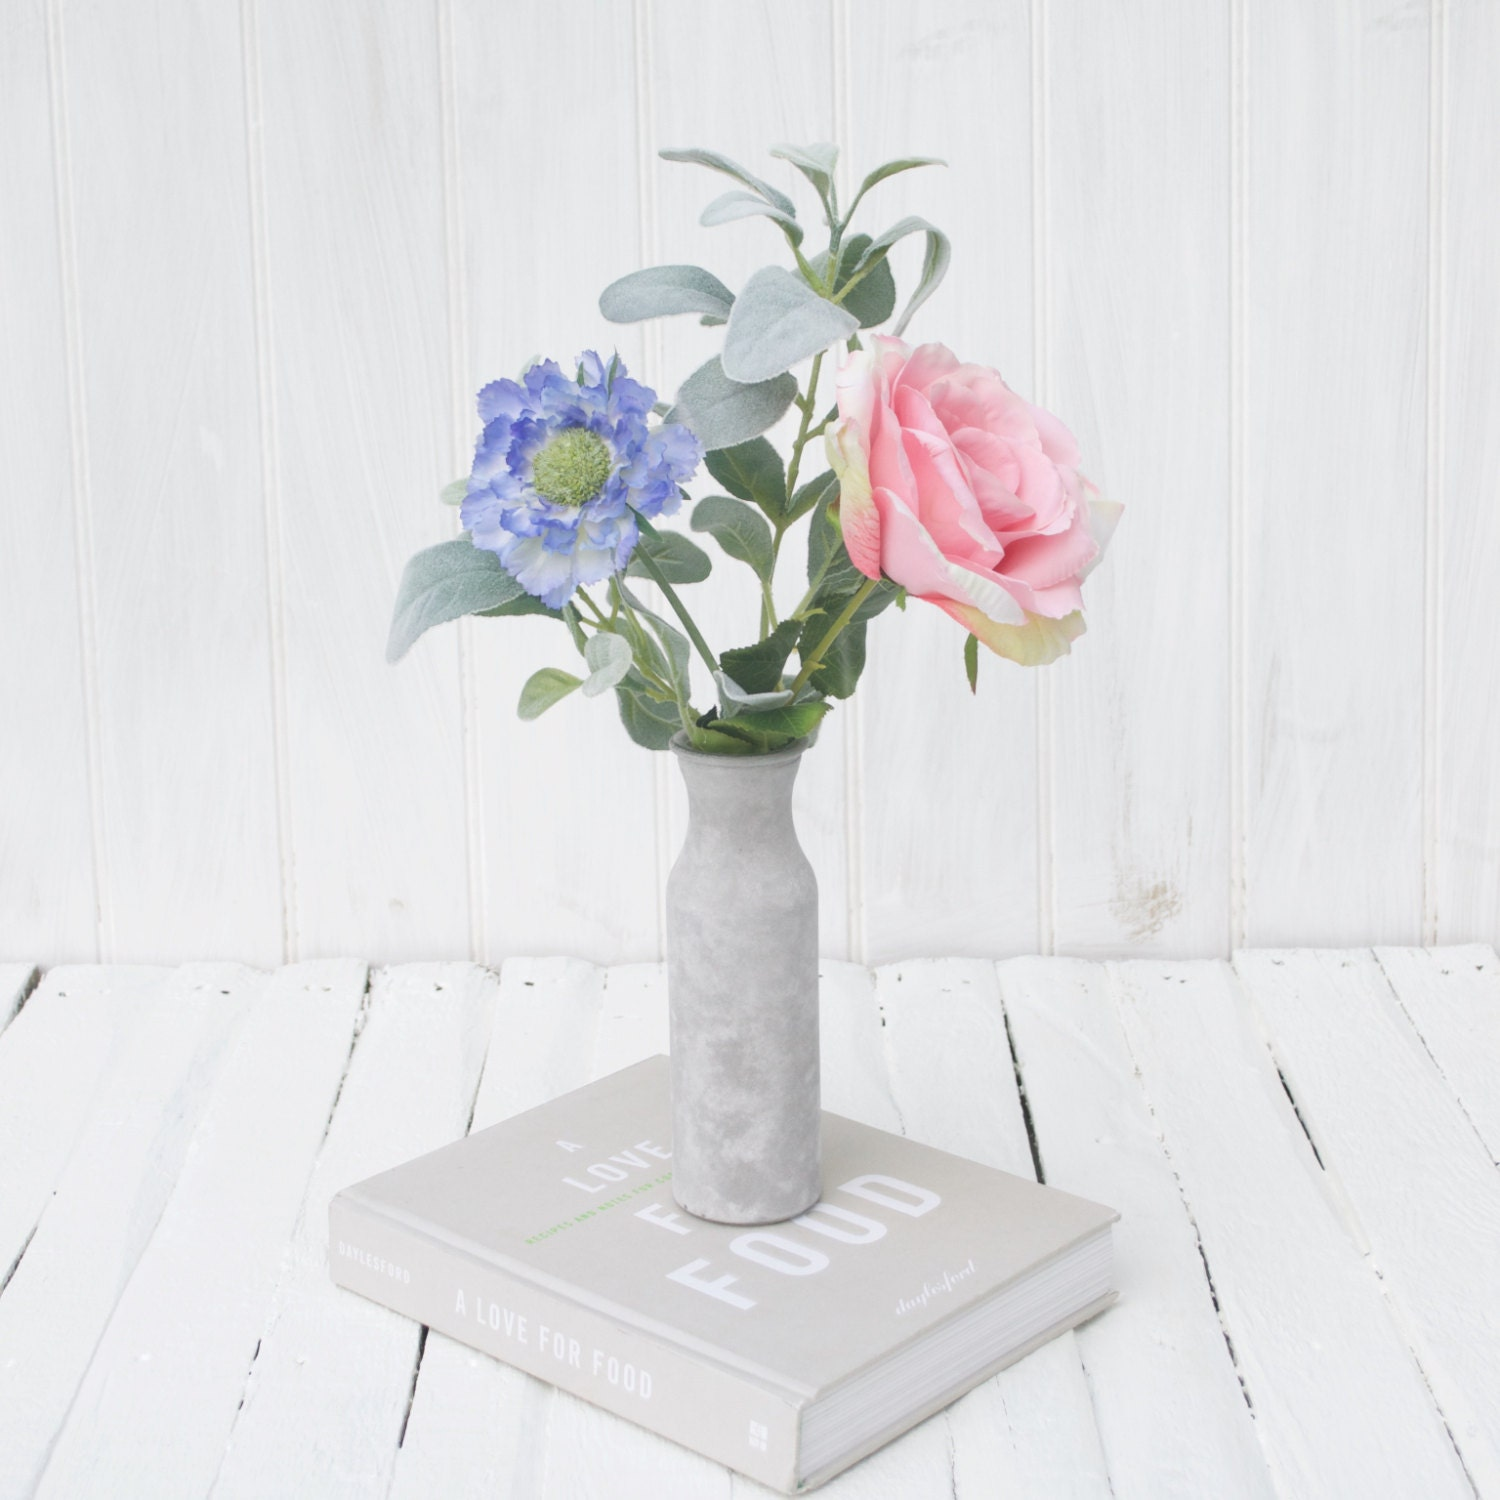 Soft pink real touch rose bouquet everlasting rose bouquet etsy zoom izmirmasajfo